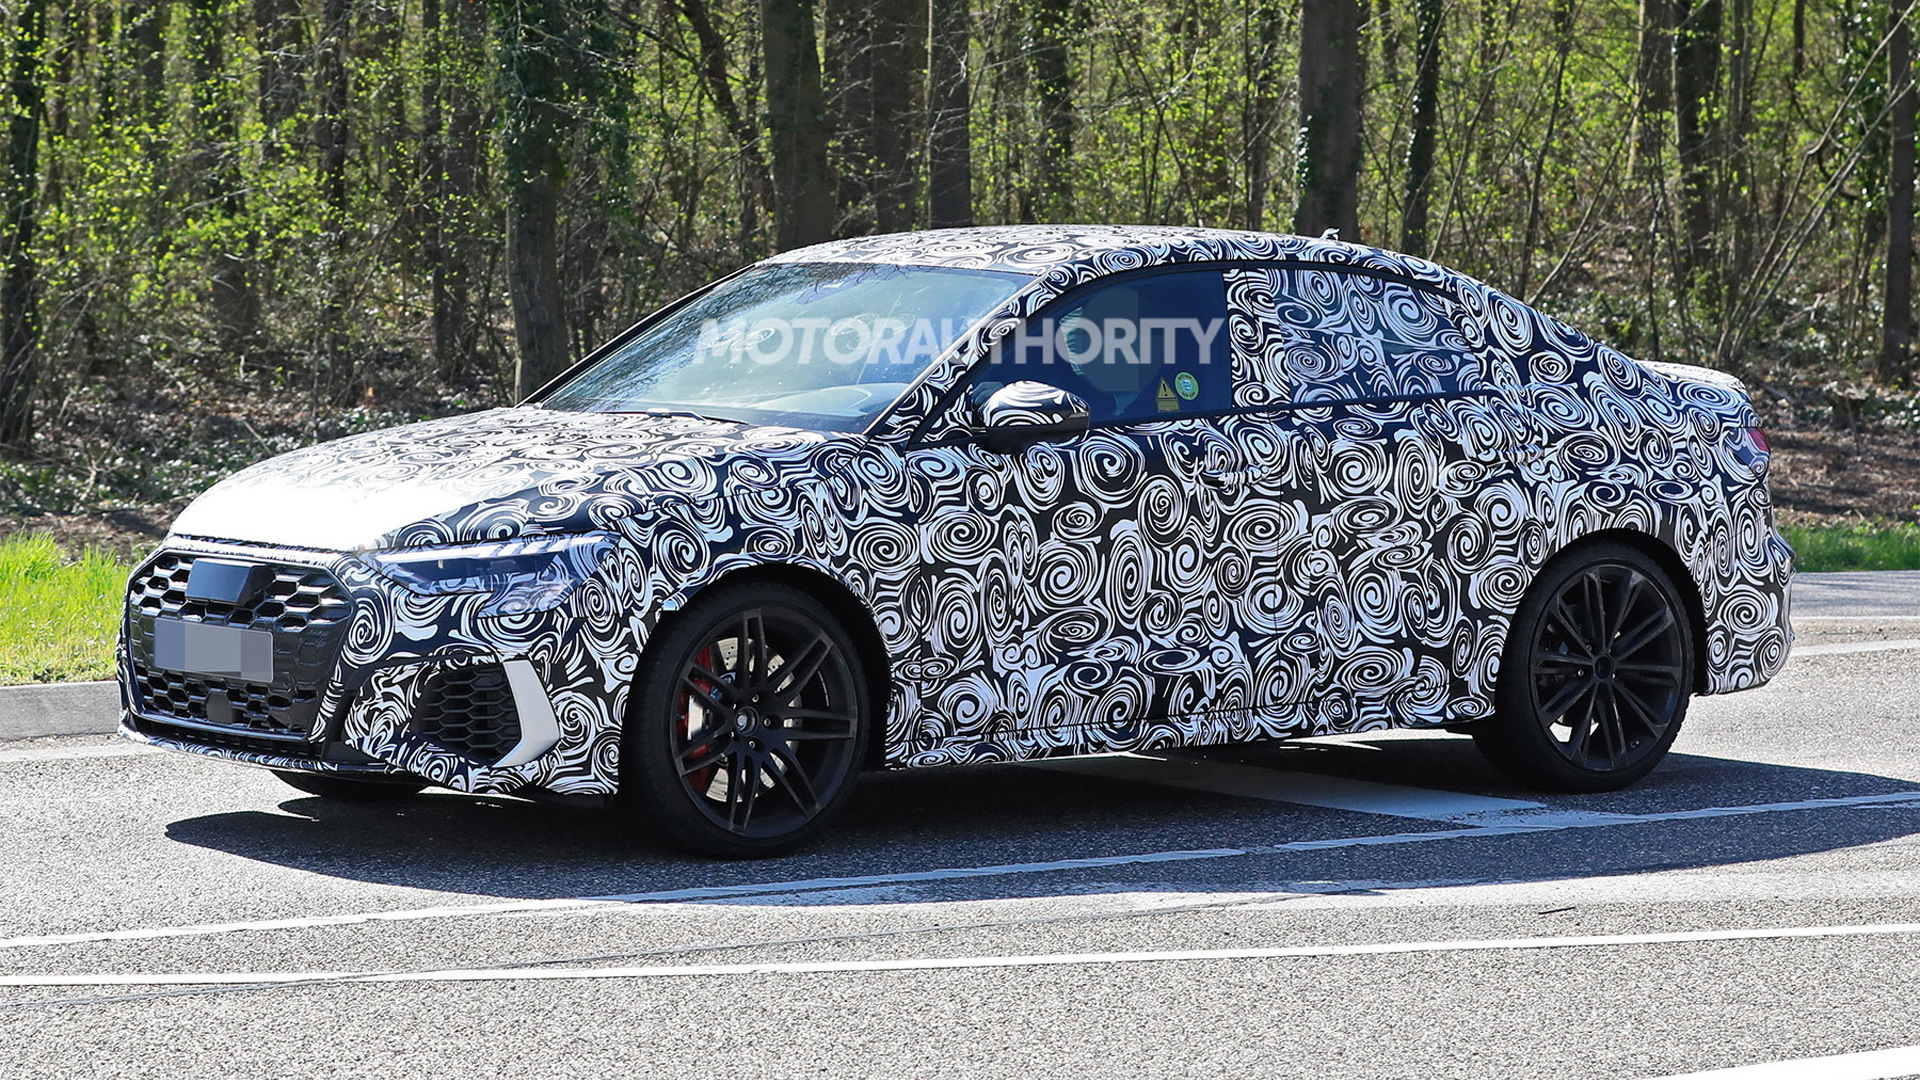 2022 Audi RS 3 spy shots - Photo credit: S. Baldauf/SB-Medien